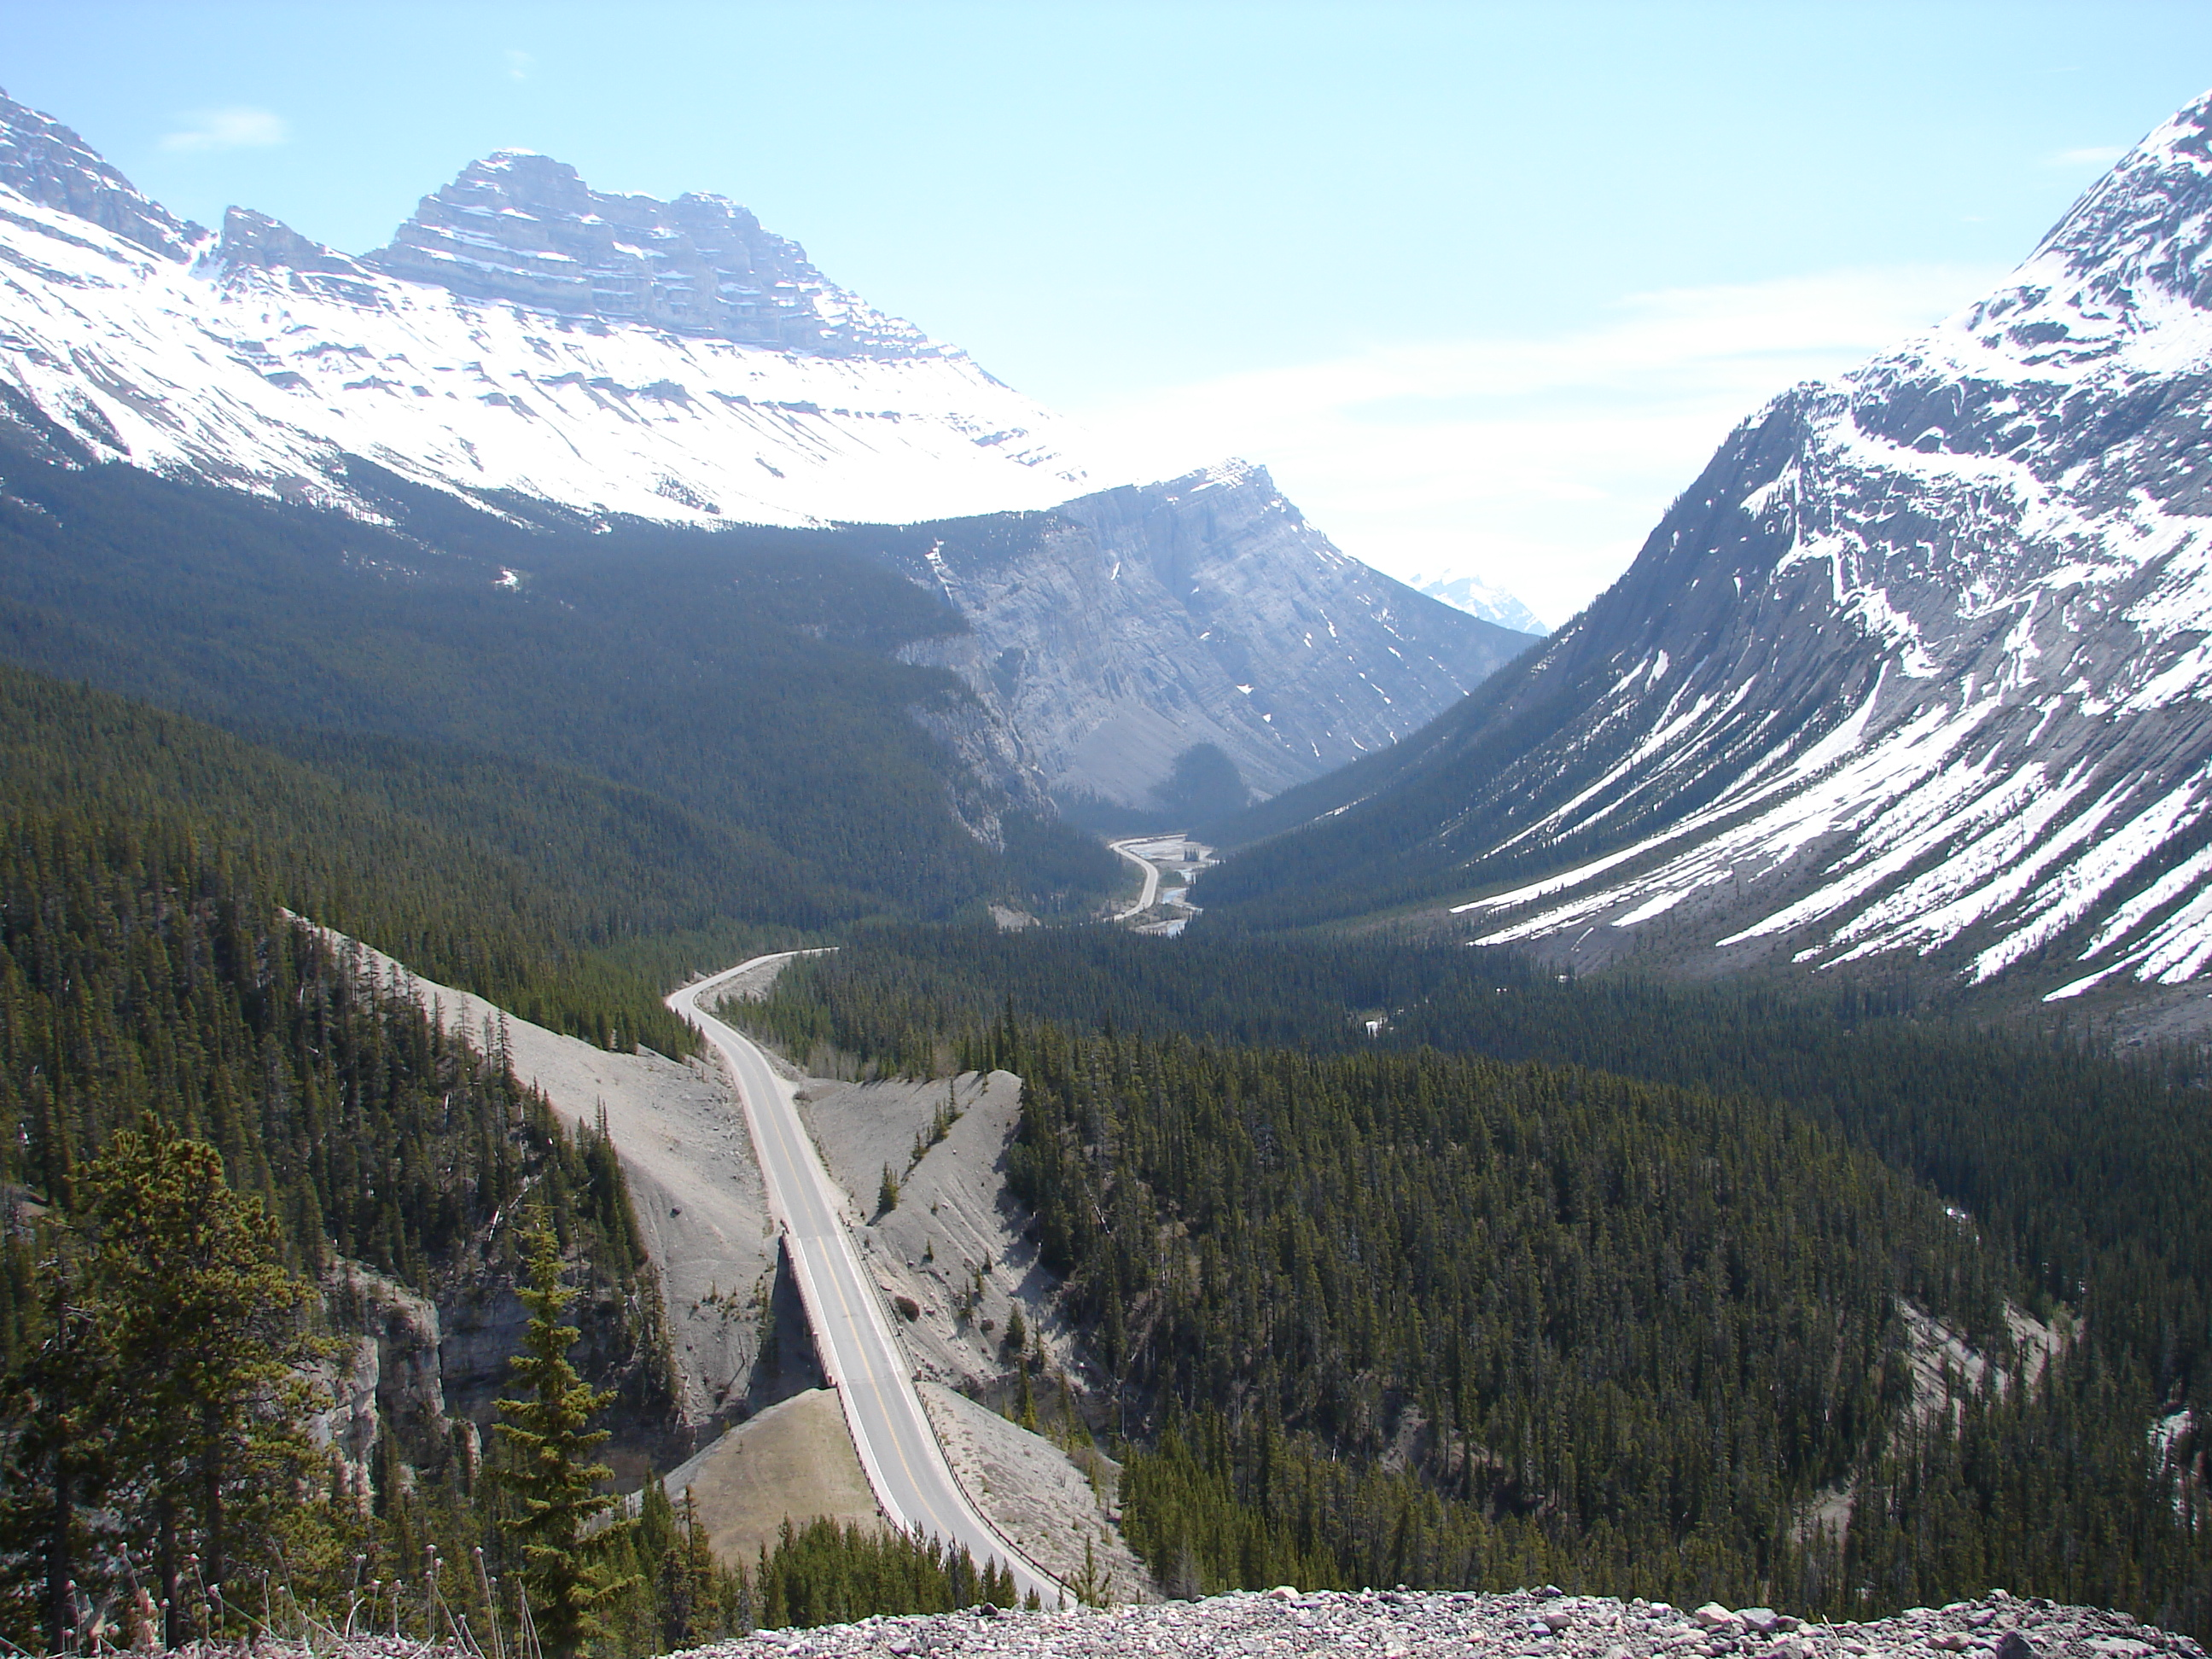 icefields parkway motorcycling